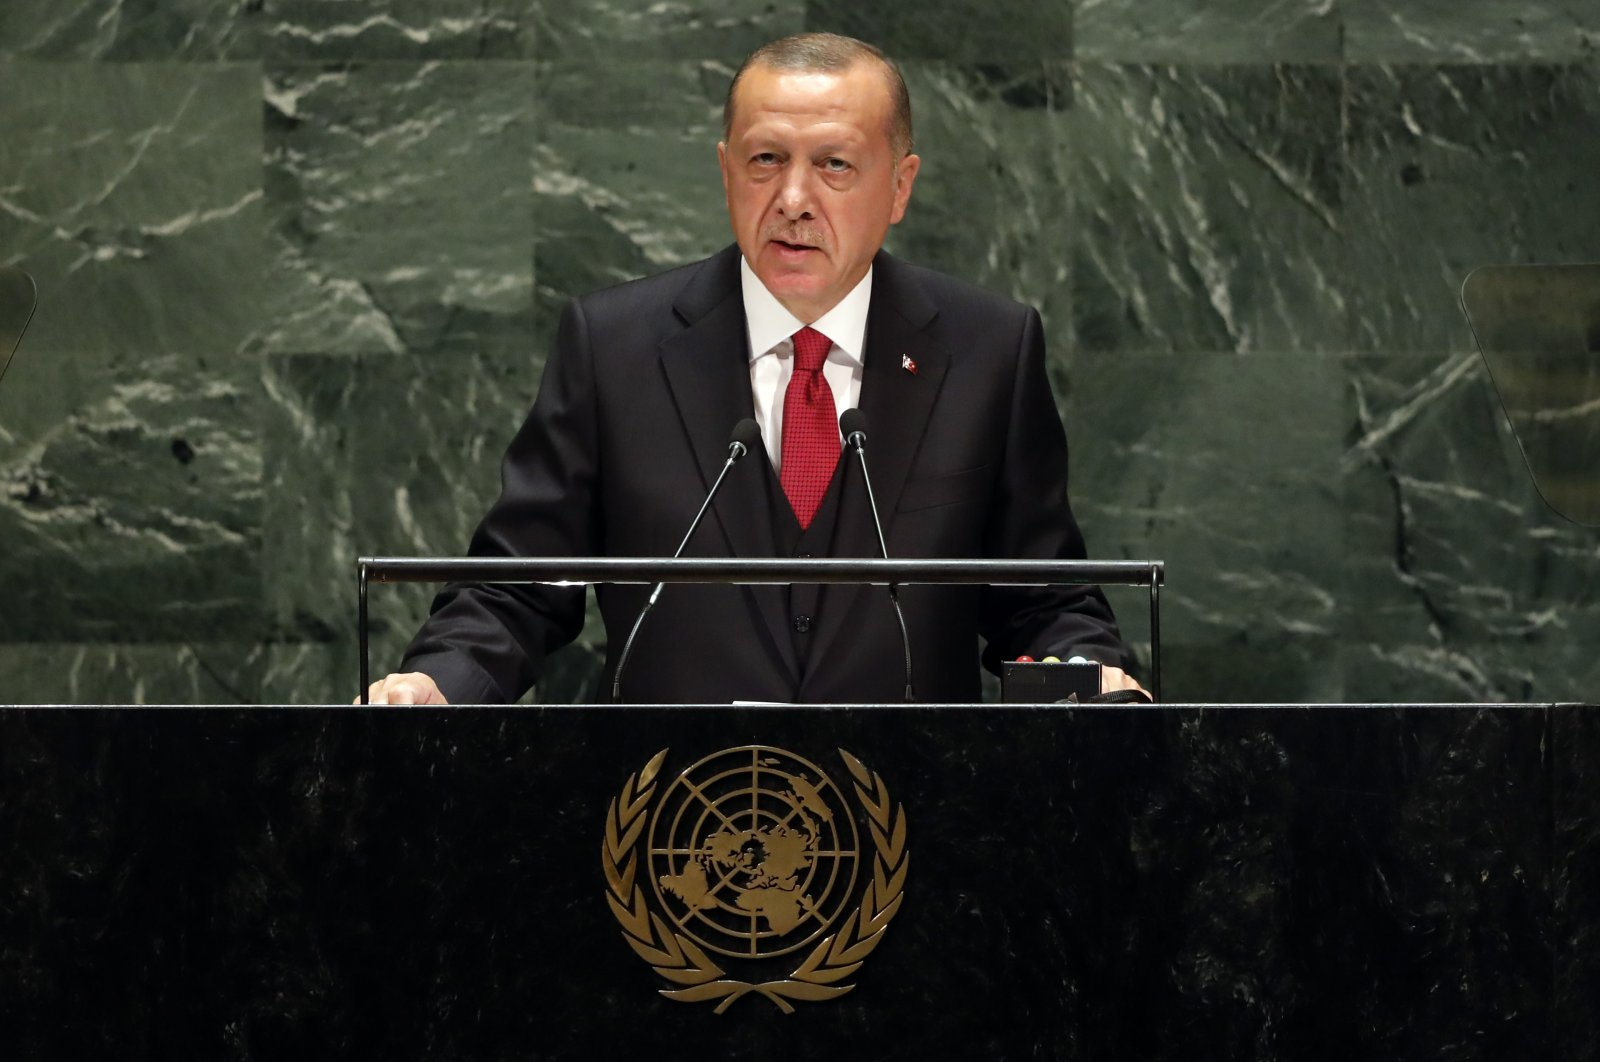 President Recep Tayyip Erdoğan addresses the 74th session of the United Nations General Assembly, Sept. 24, 2019. (AP File Photo)